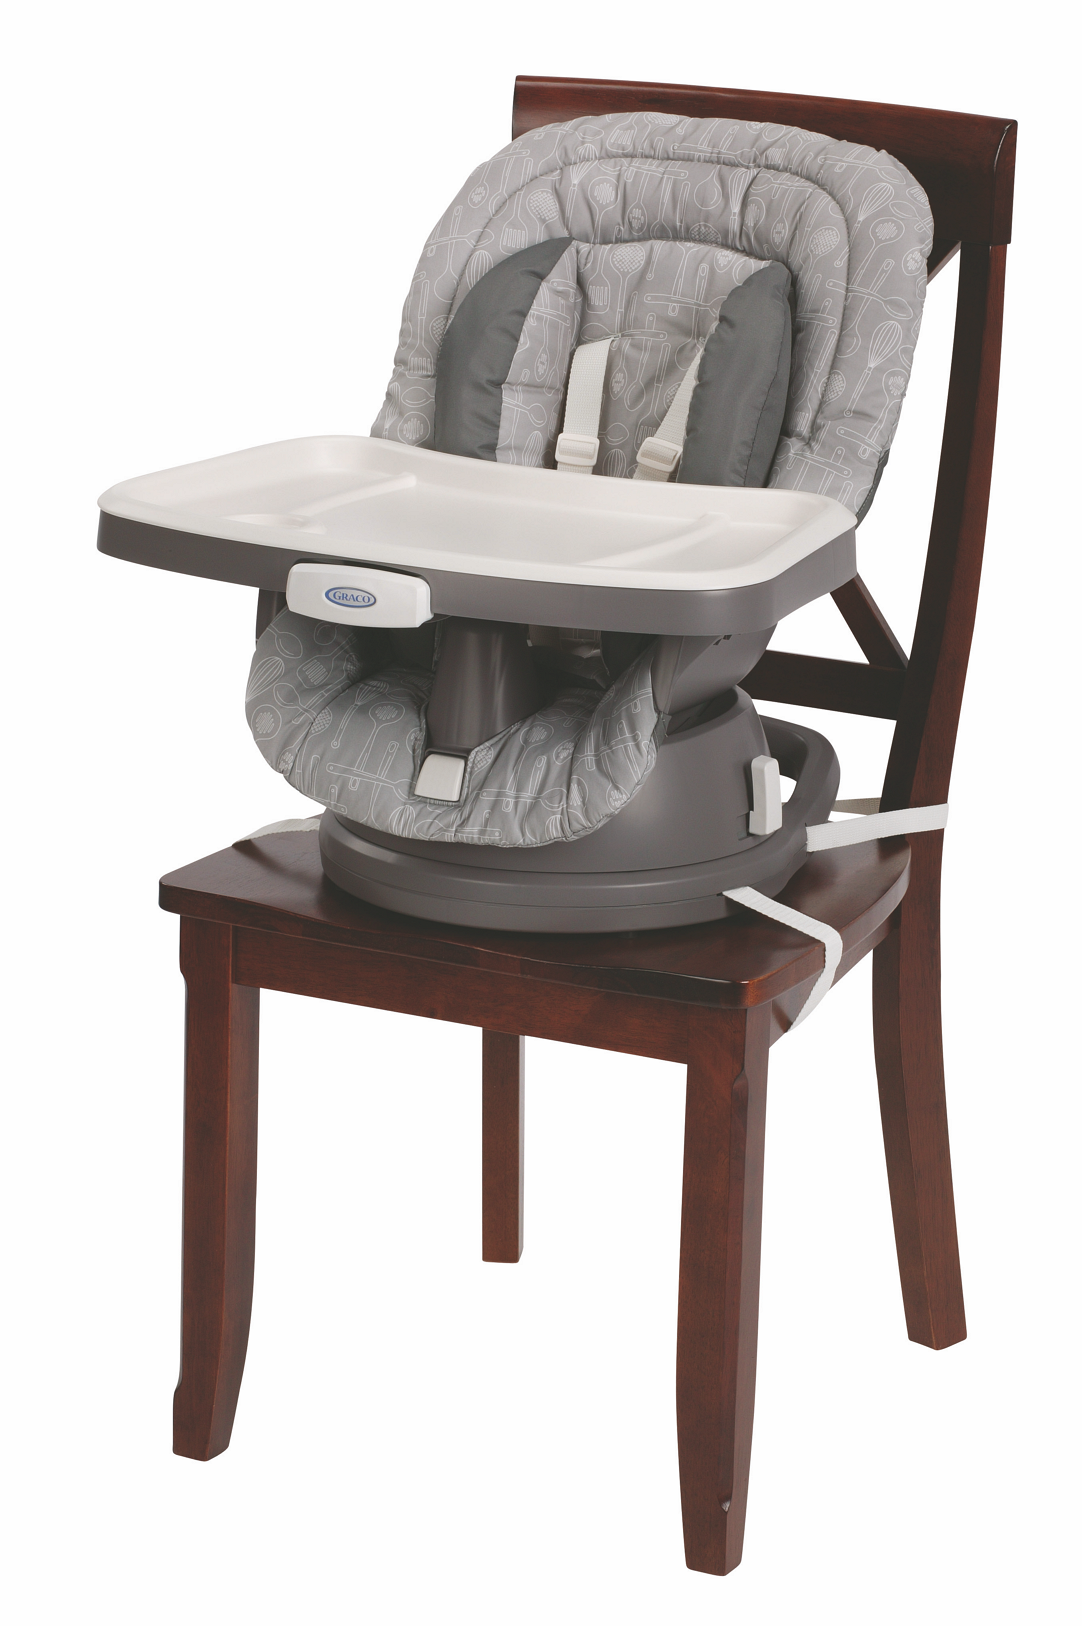 graco swivi seat 3 in 1 booster high chair abbington baby. Black Bedroom Furniture Sets. Home Design Ideas